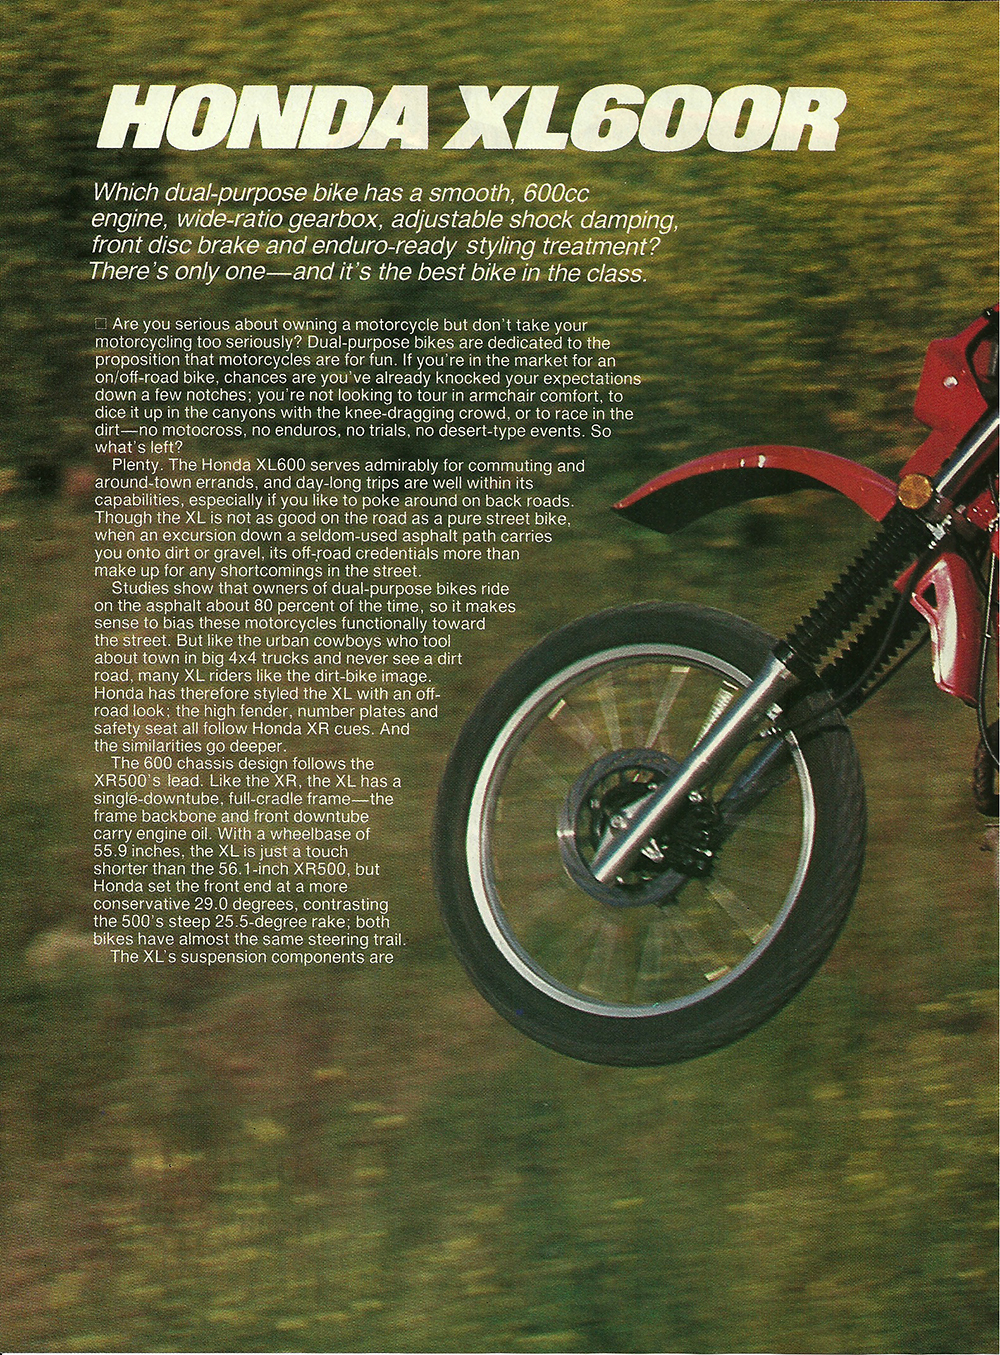 1983 Honda XL600R road test 1.jpg